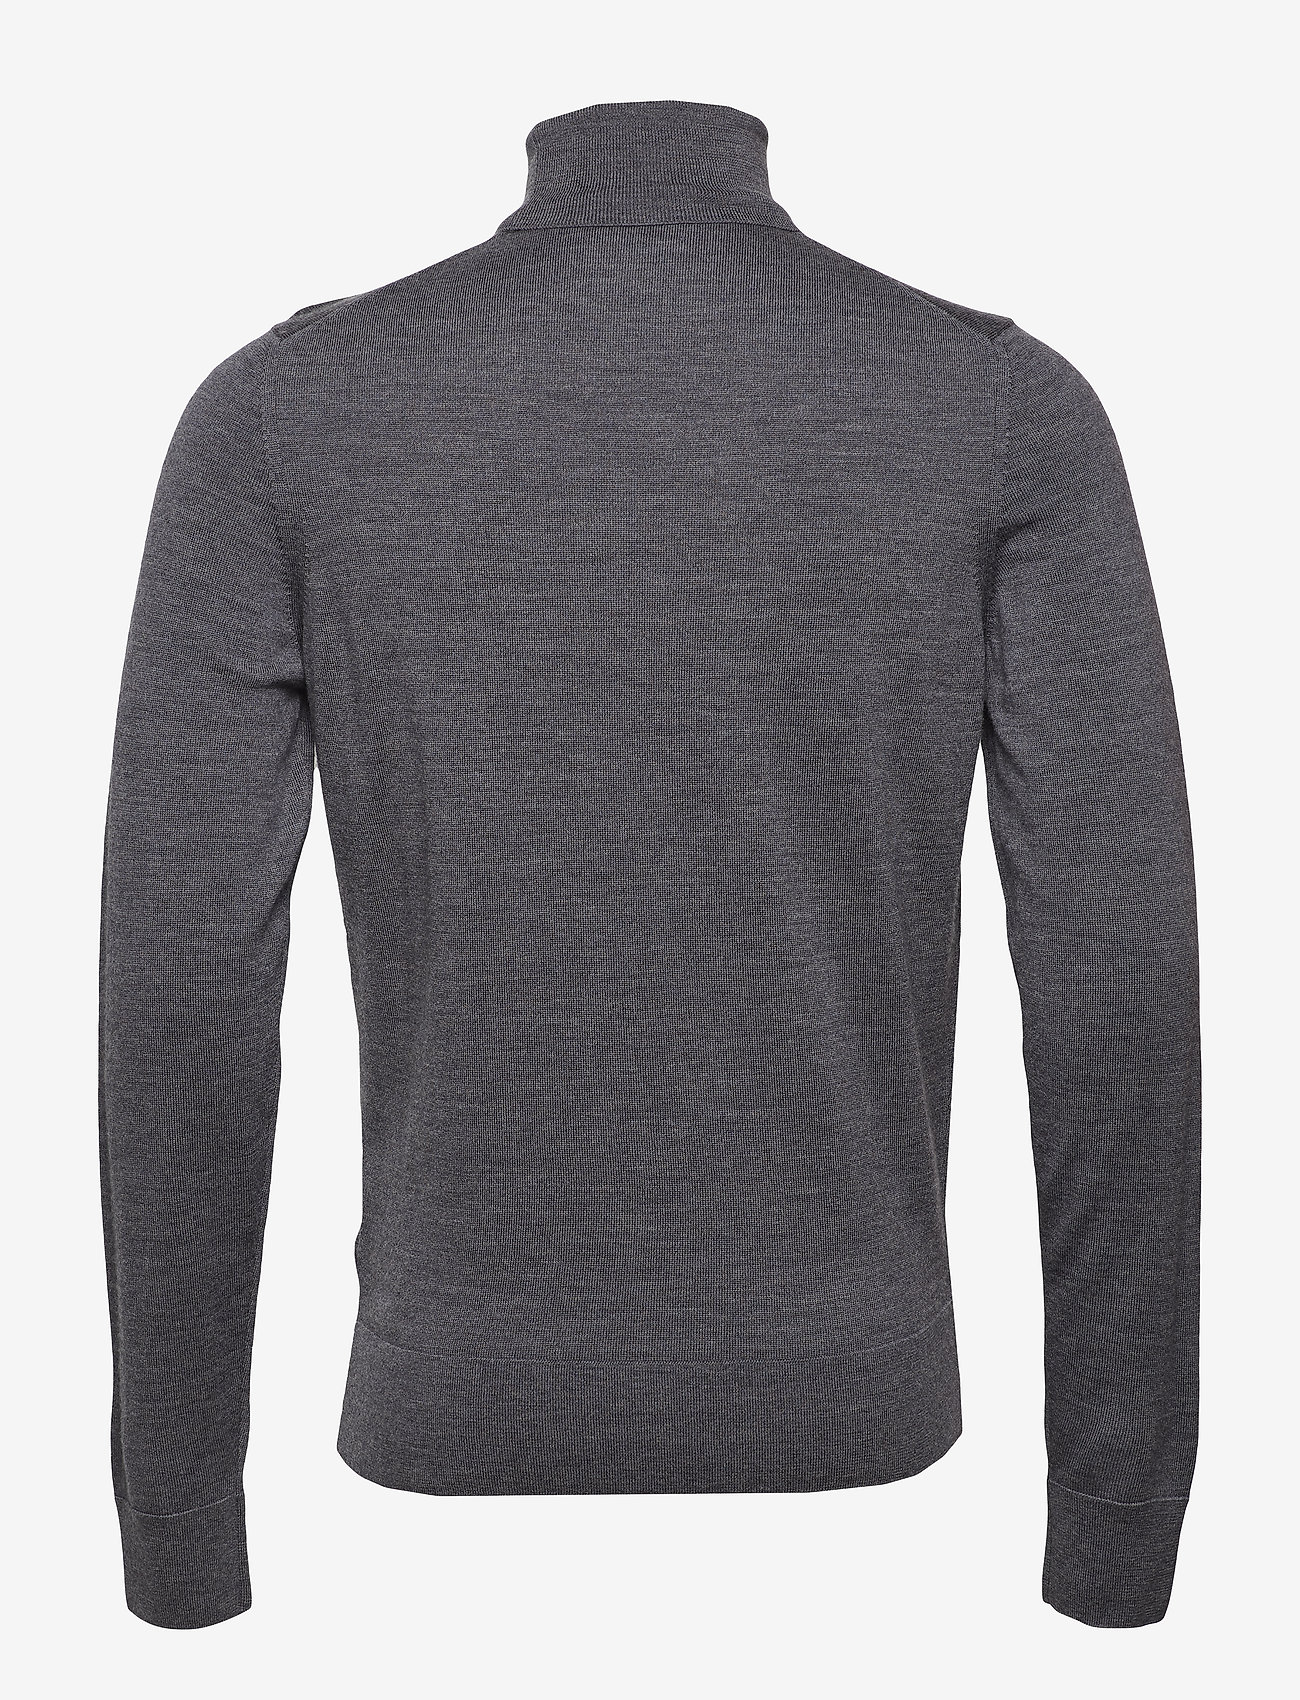 Calvin Klein - SUPERIOR WOOL TURTLE NECK - basic knitwear - mid grey heather